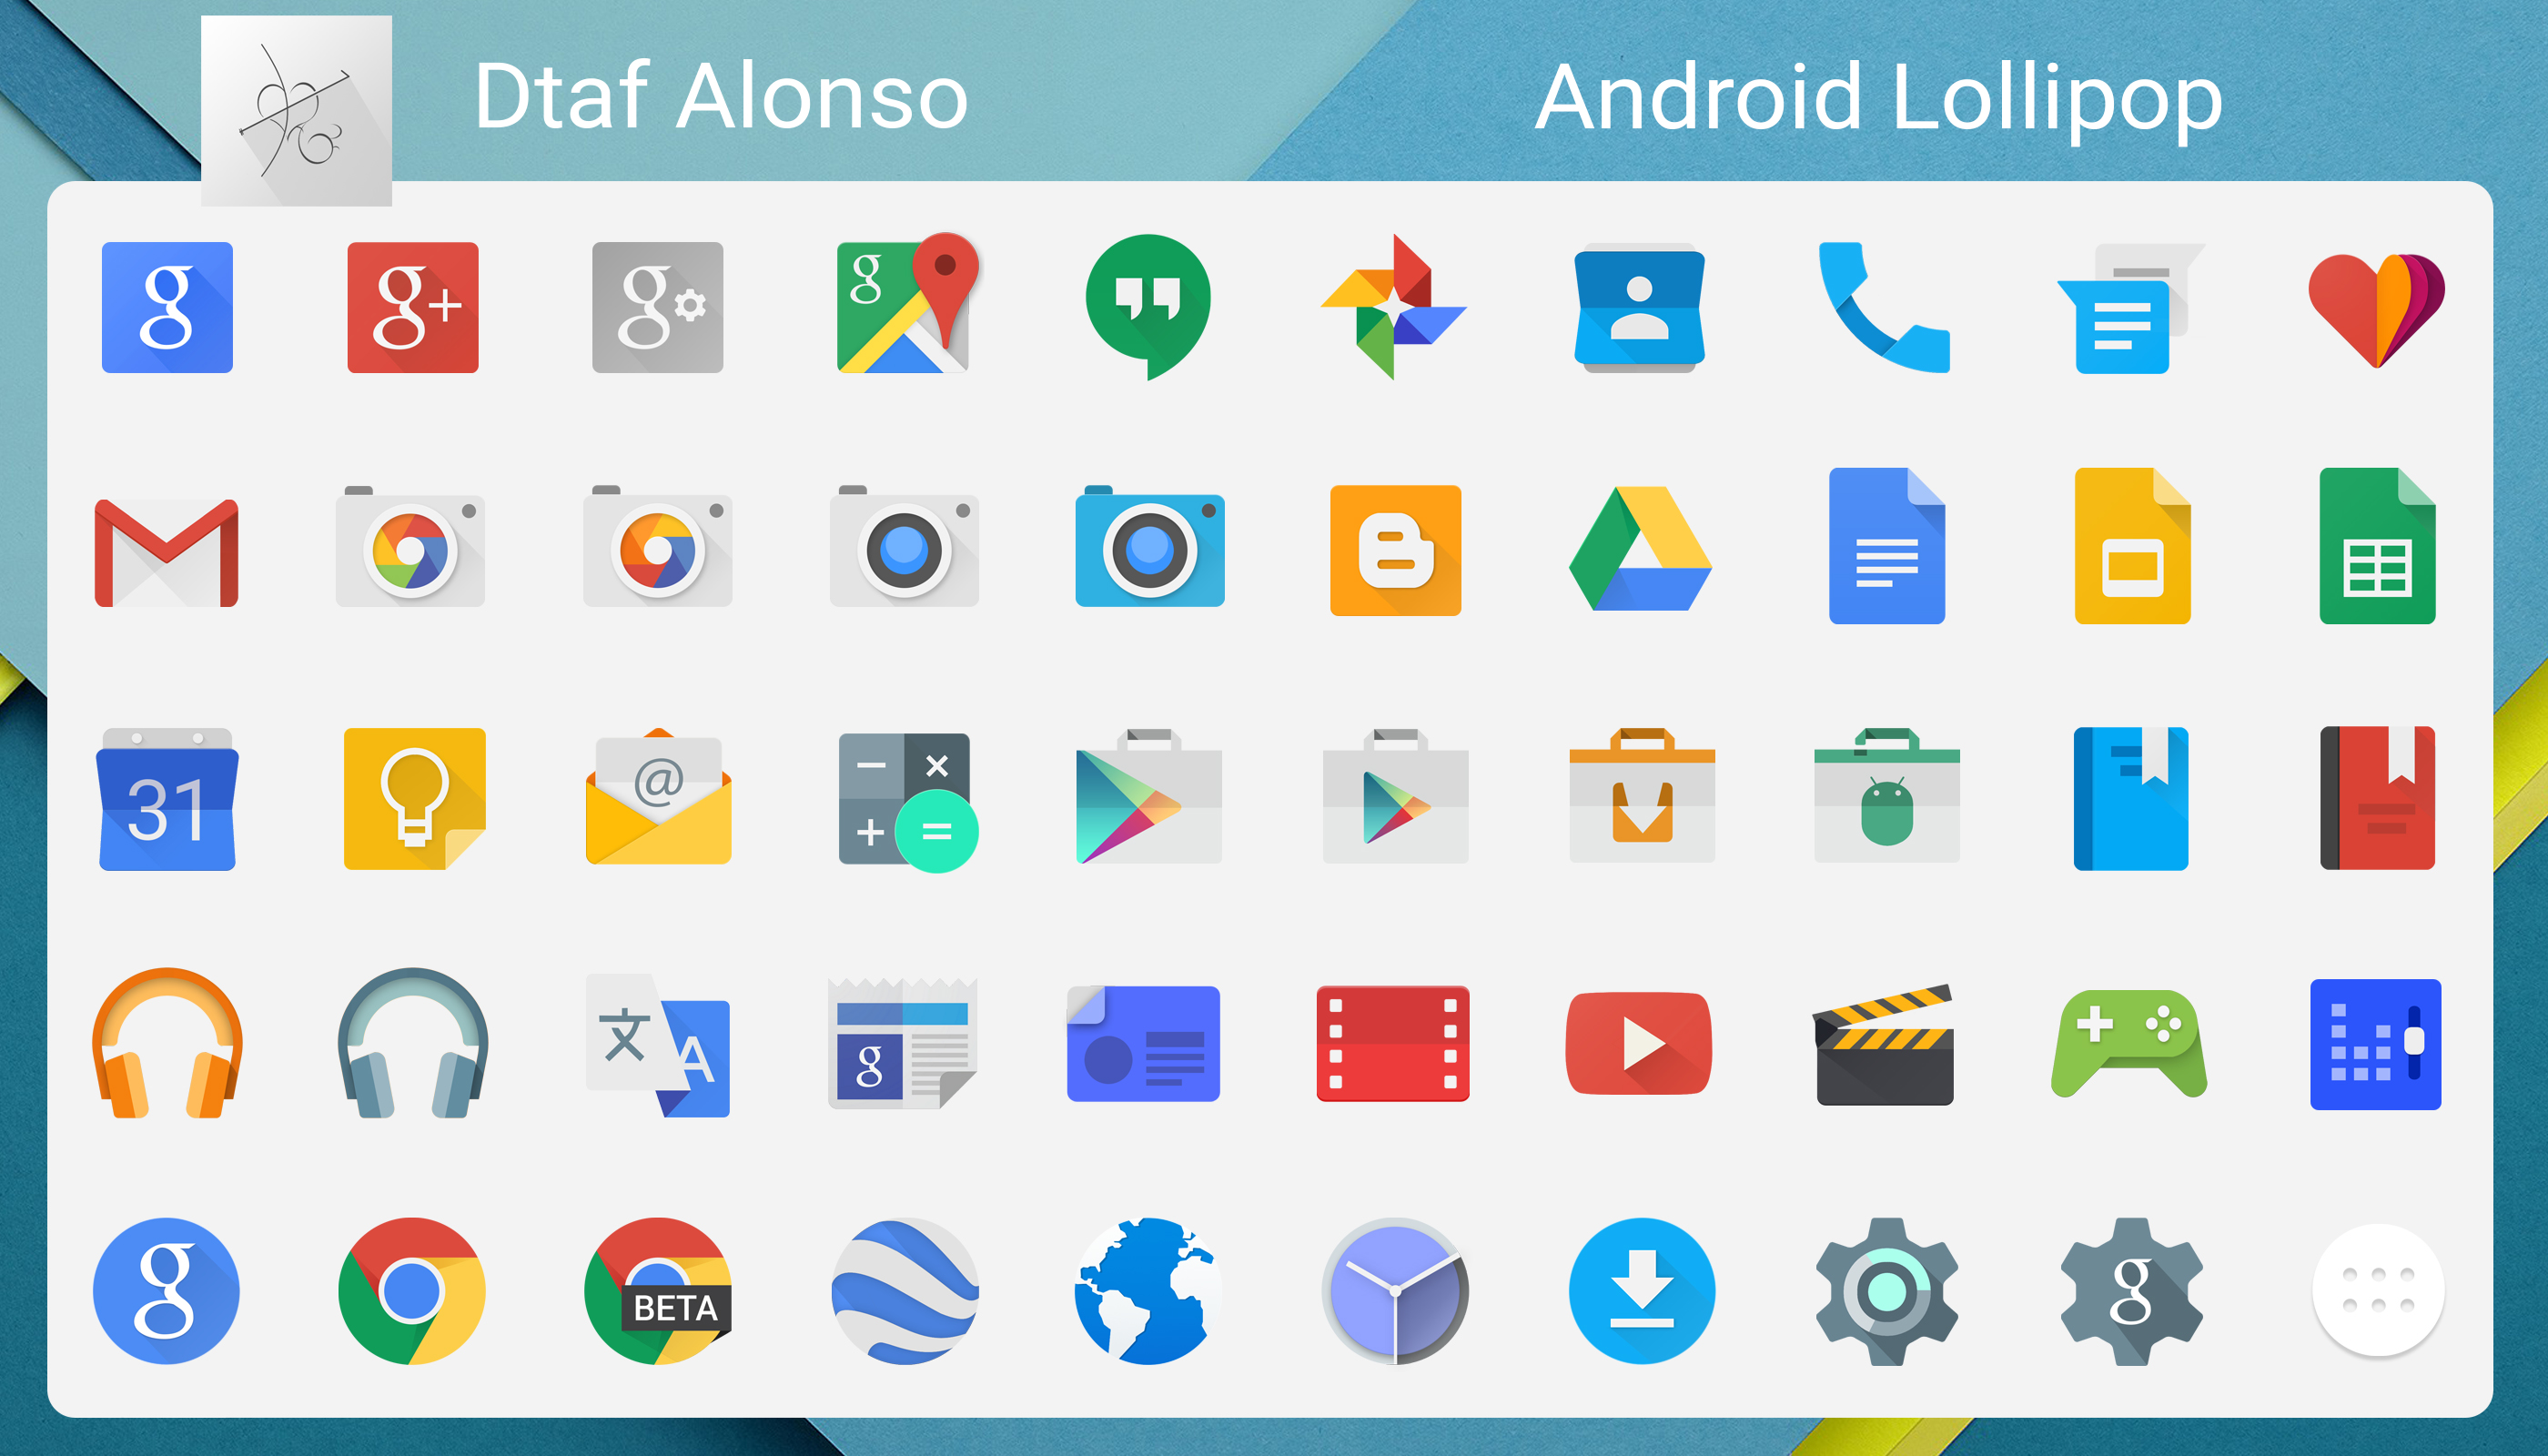 13 Android Lollipop Icons Images